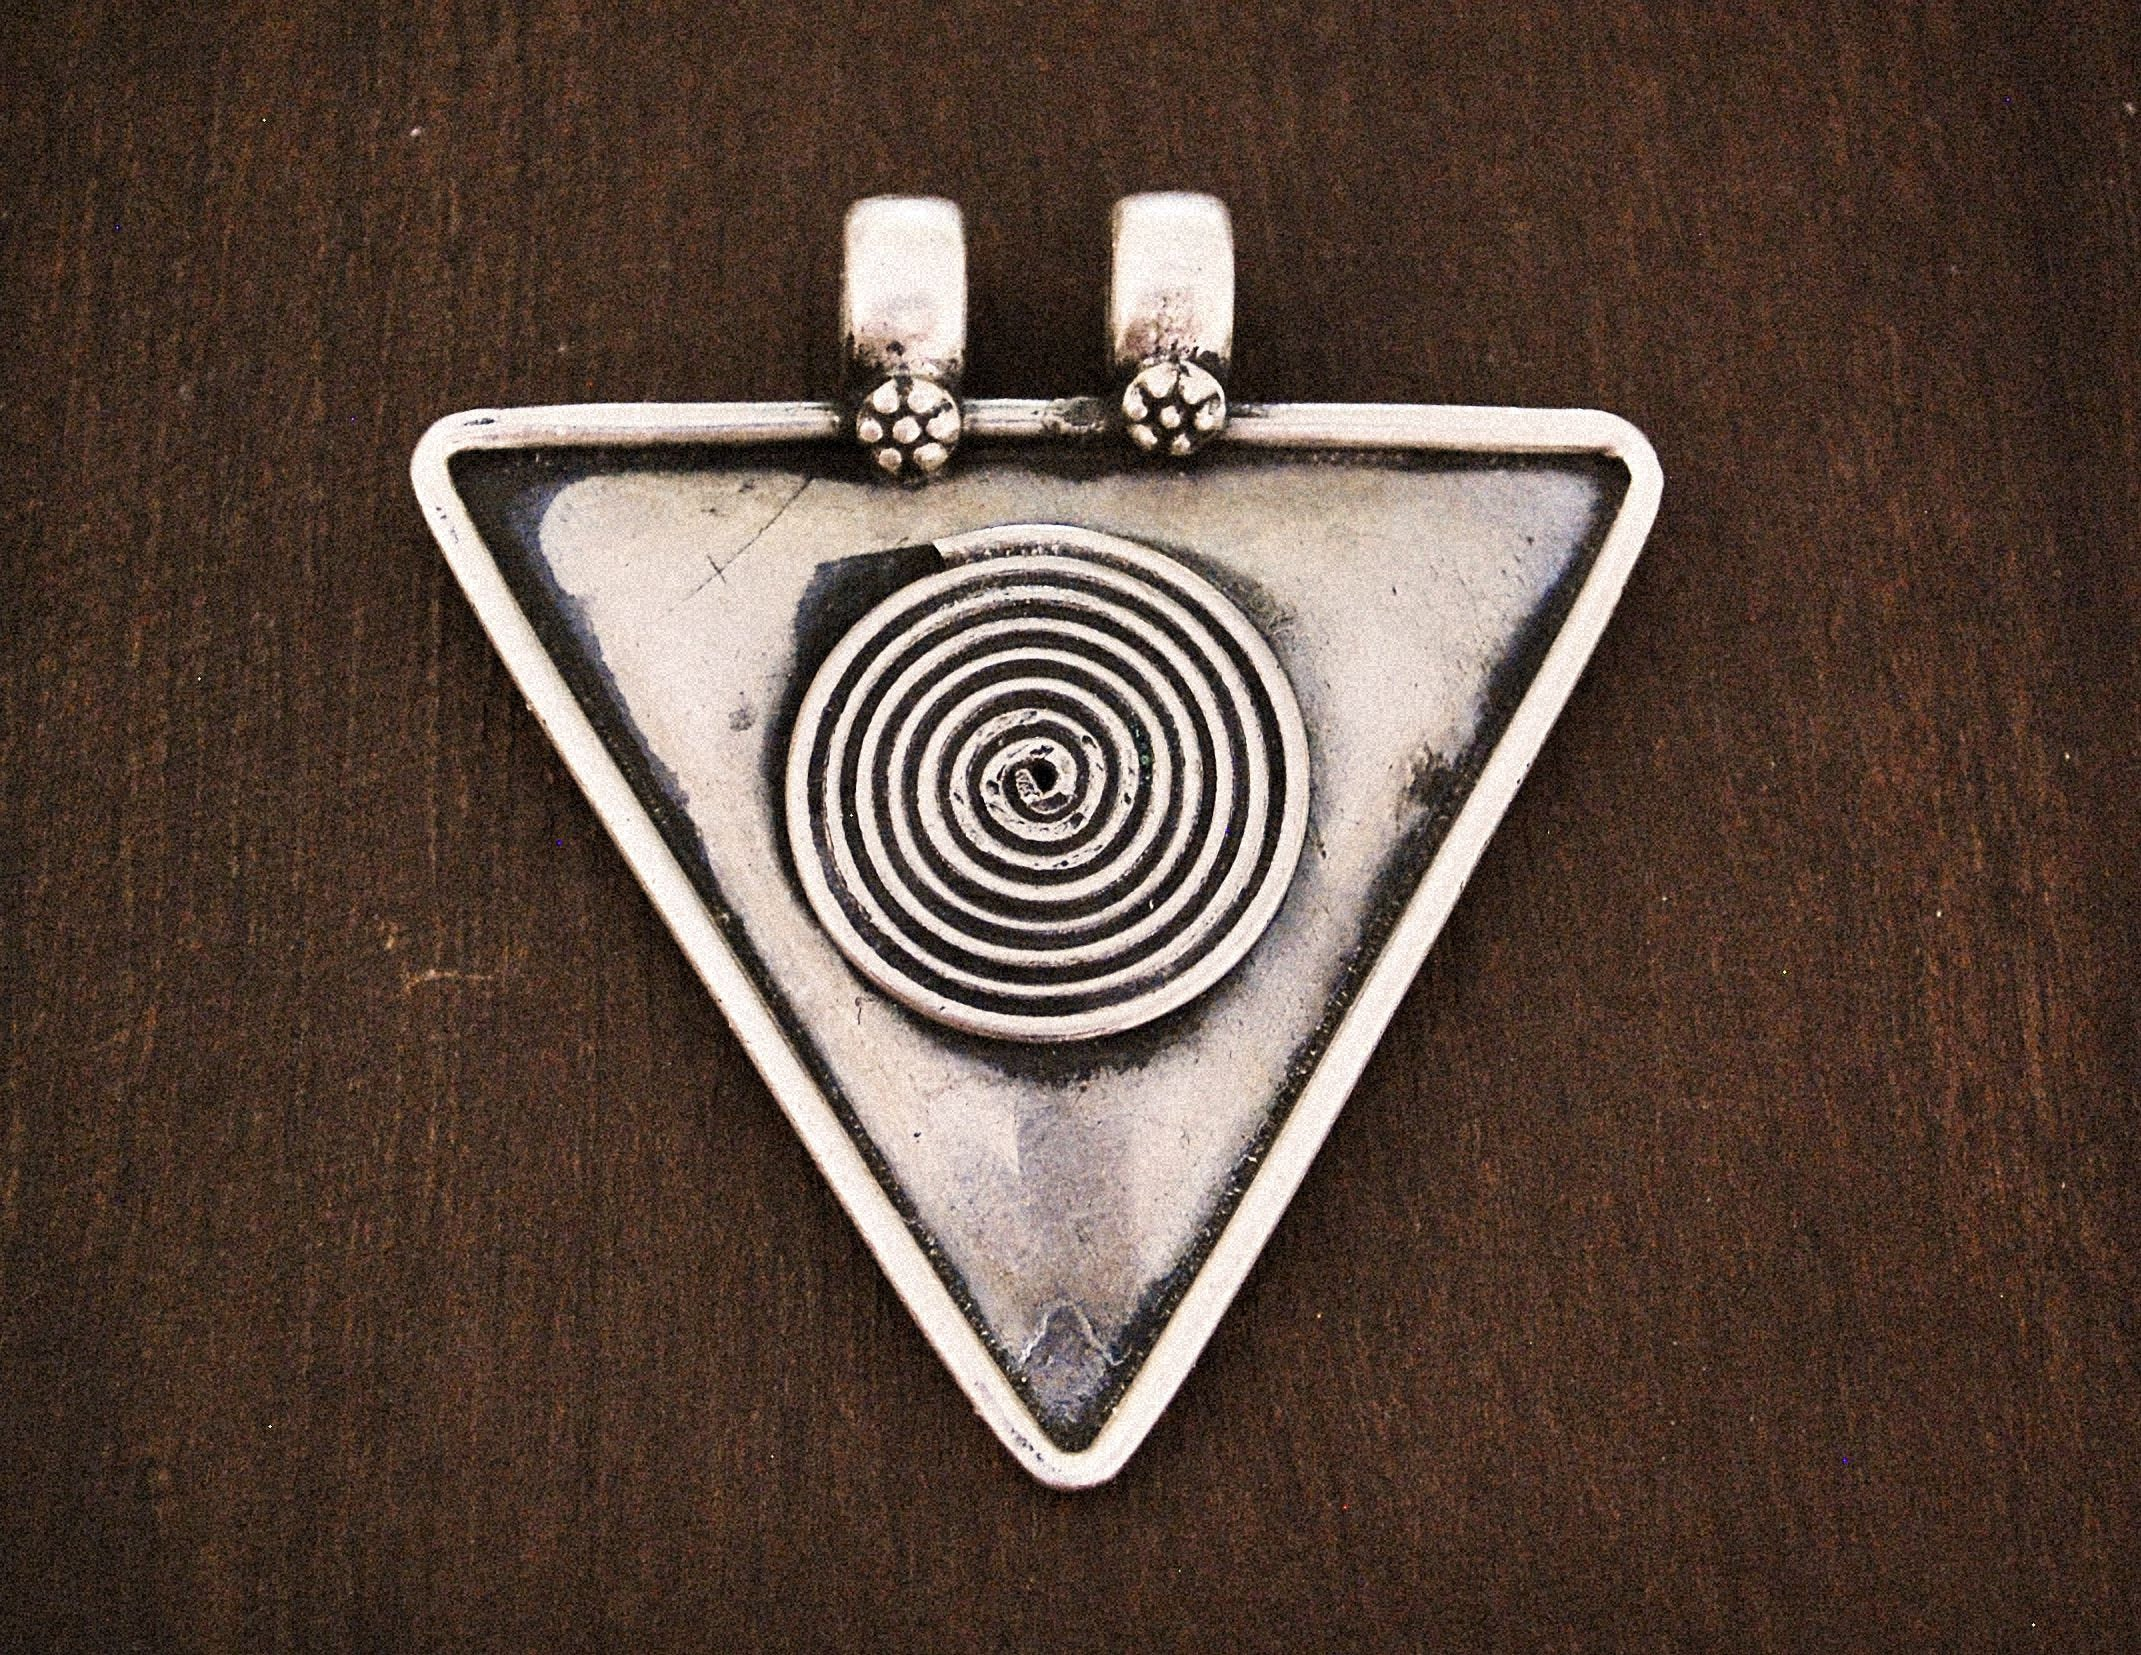 Rajasthan Silver Amulet - Spiral of Life Pendant - Tribal Rajasthan Pendant - Ethnic India Pendant - Magical Amulet